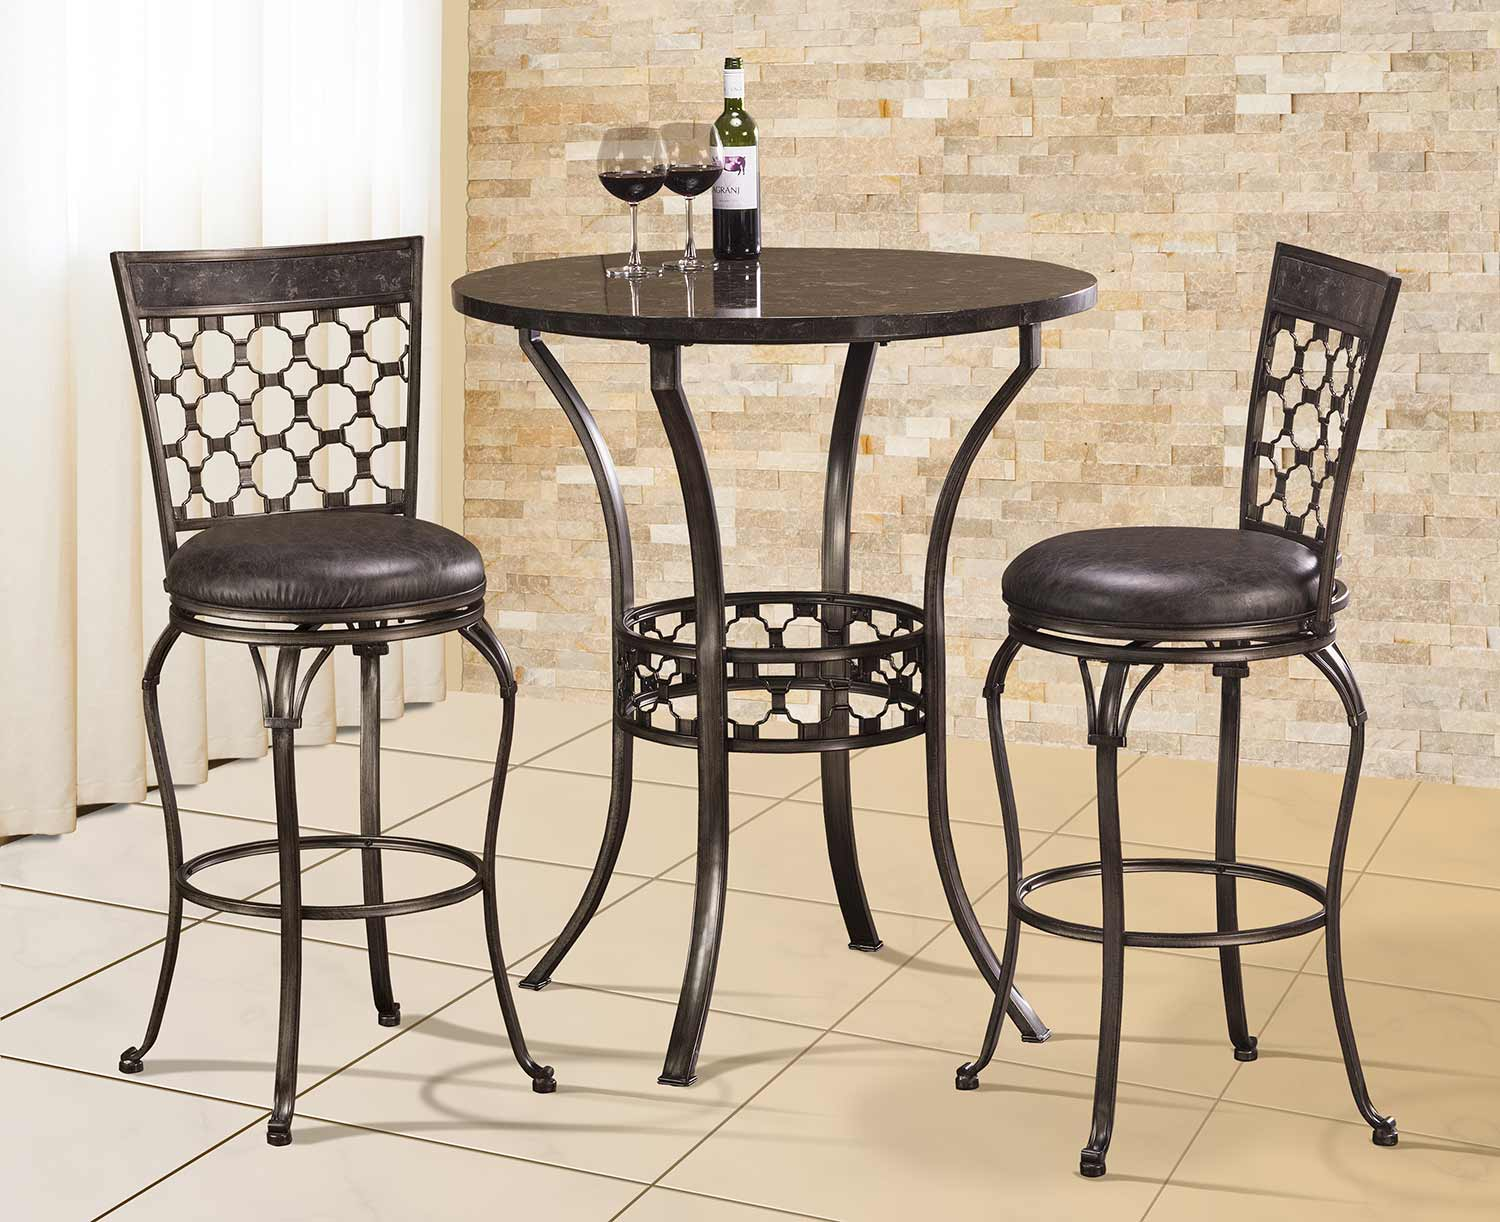 Hillsdale Brescello 3-Piece Bar Height Bistro Dining Set - Antique Pewter/Blue Stone